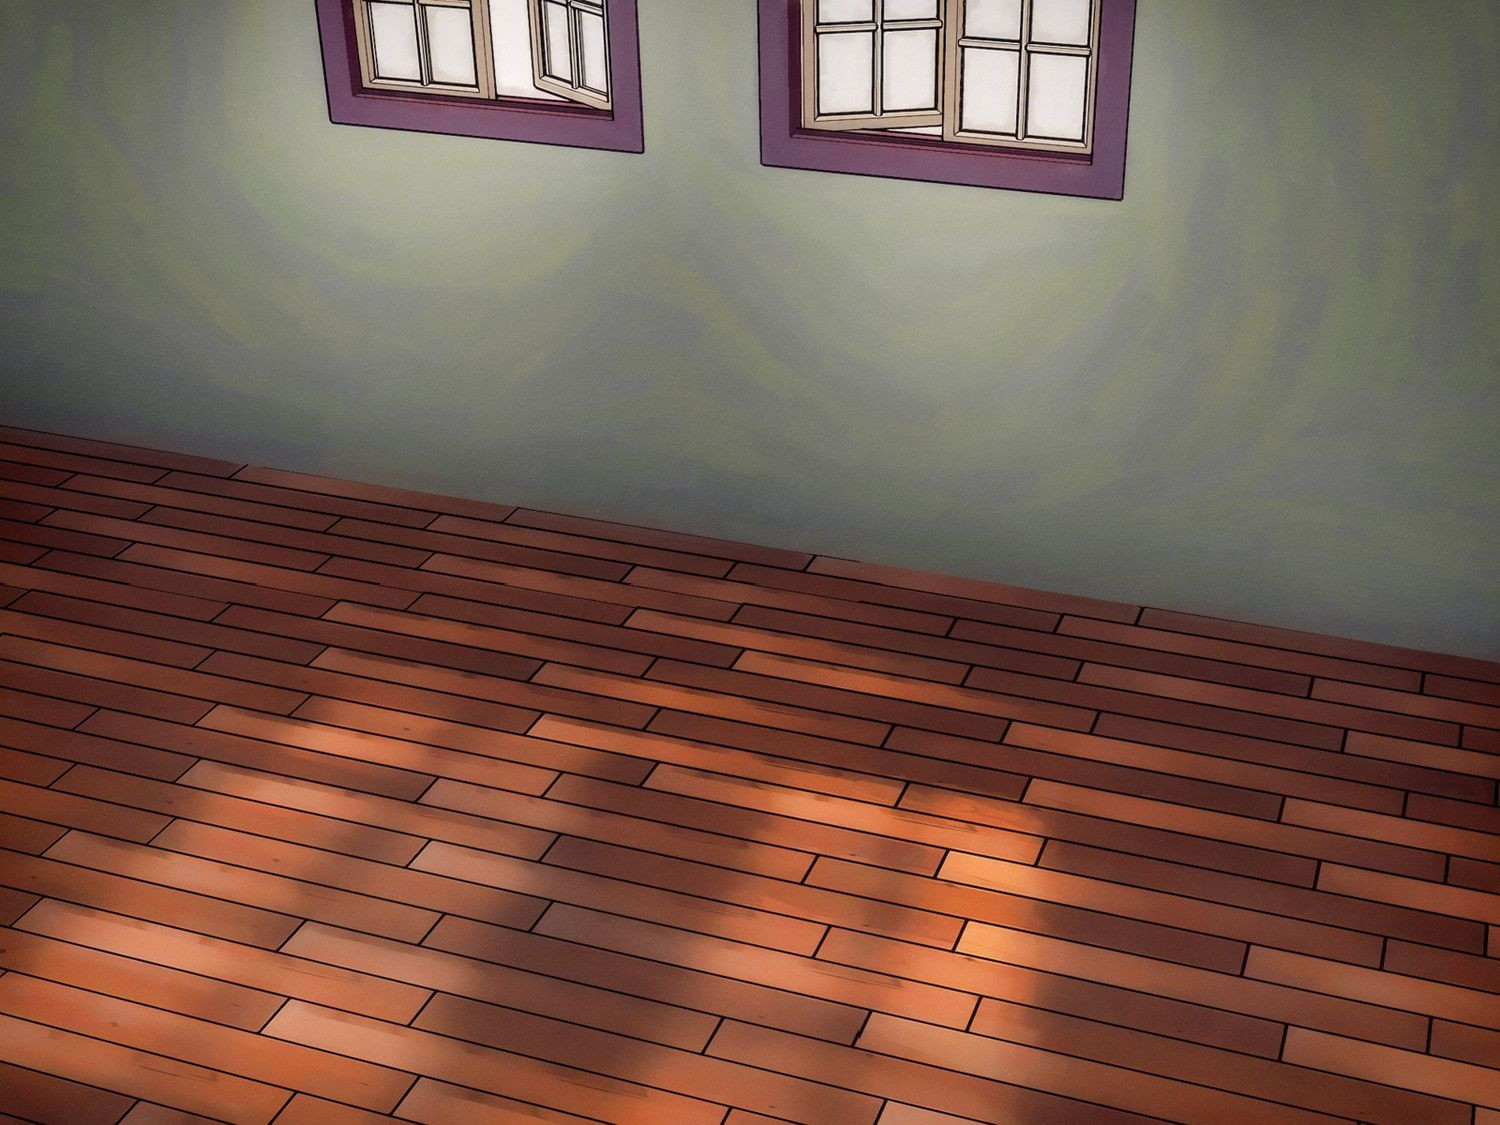 polyurethane drying time hardwood floors of how to finish hardwood floors a vripmaster inside wax your floor to seal the wood and buff it to remove excess wax this can be tough time consuming work but it will make your hardwood floor last much